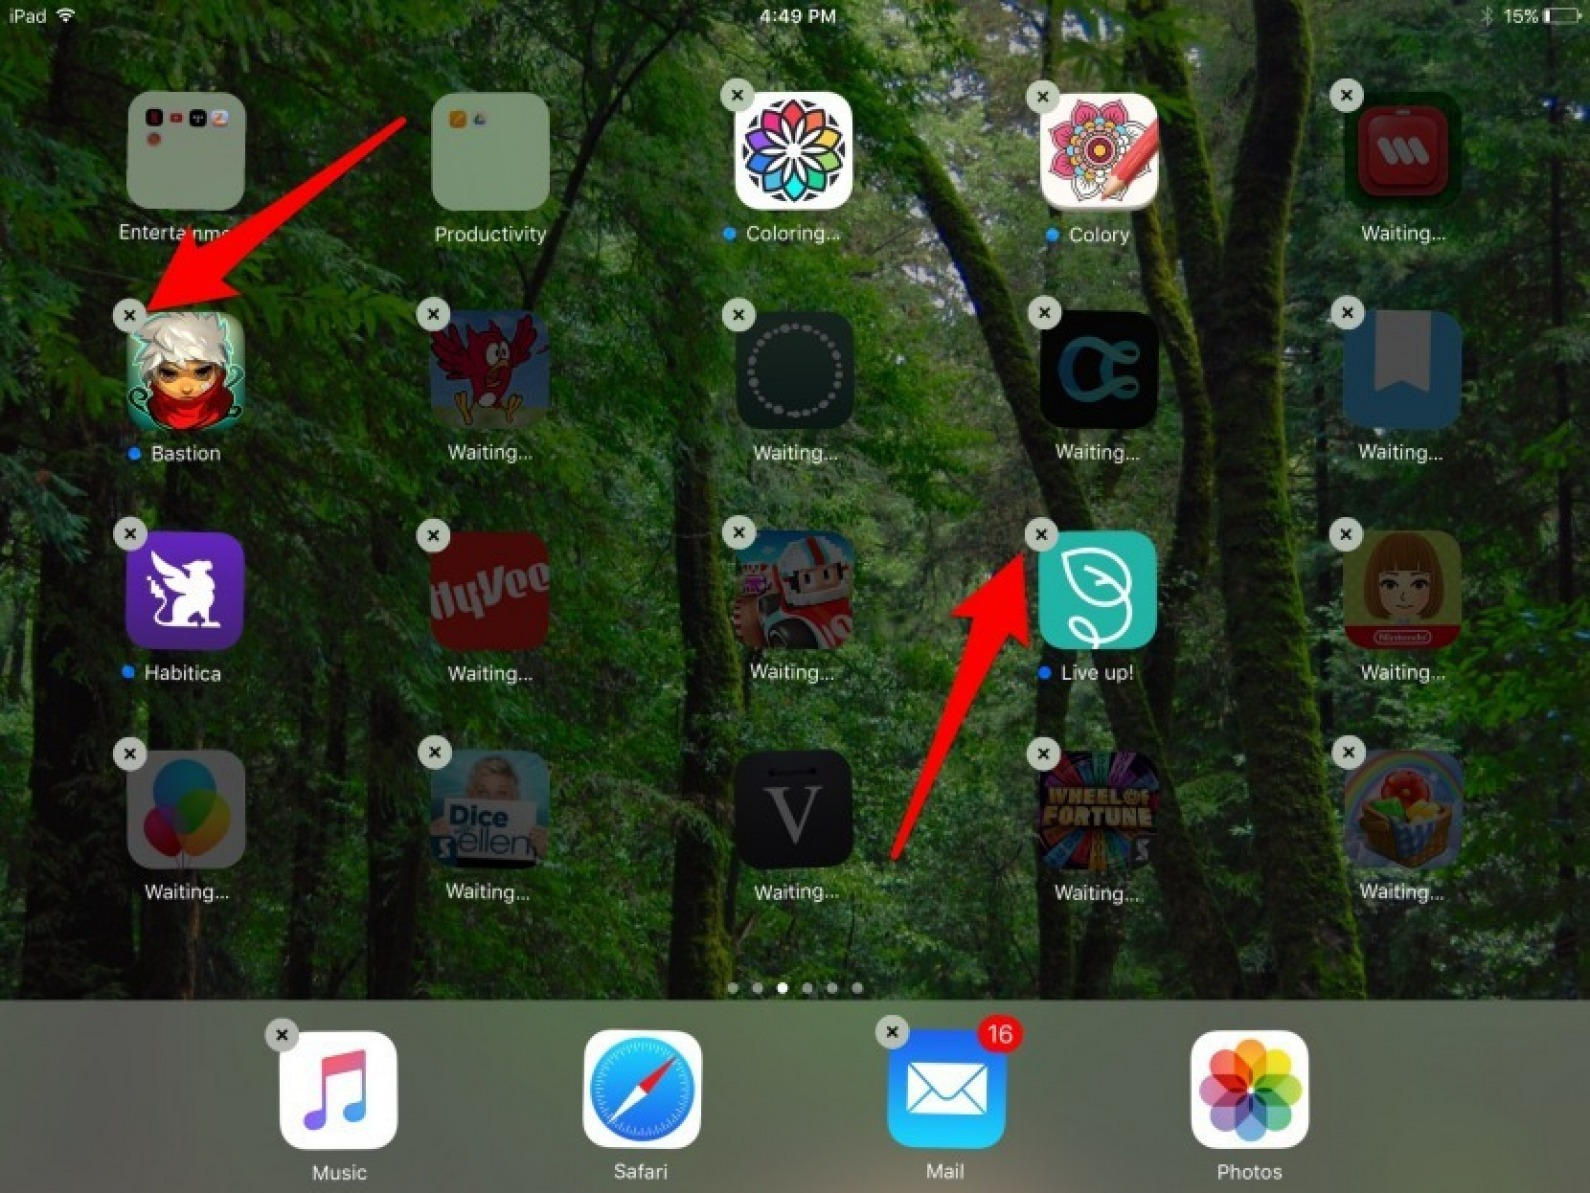 Delete, Remove & Uninstall: How to Get Rid of Apps on the iPad